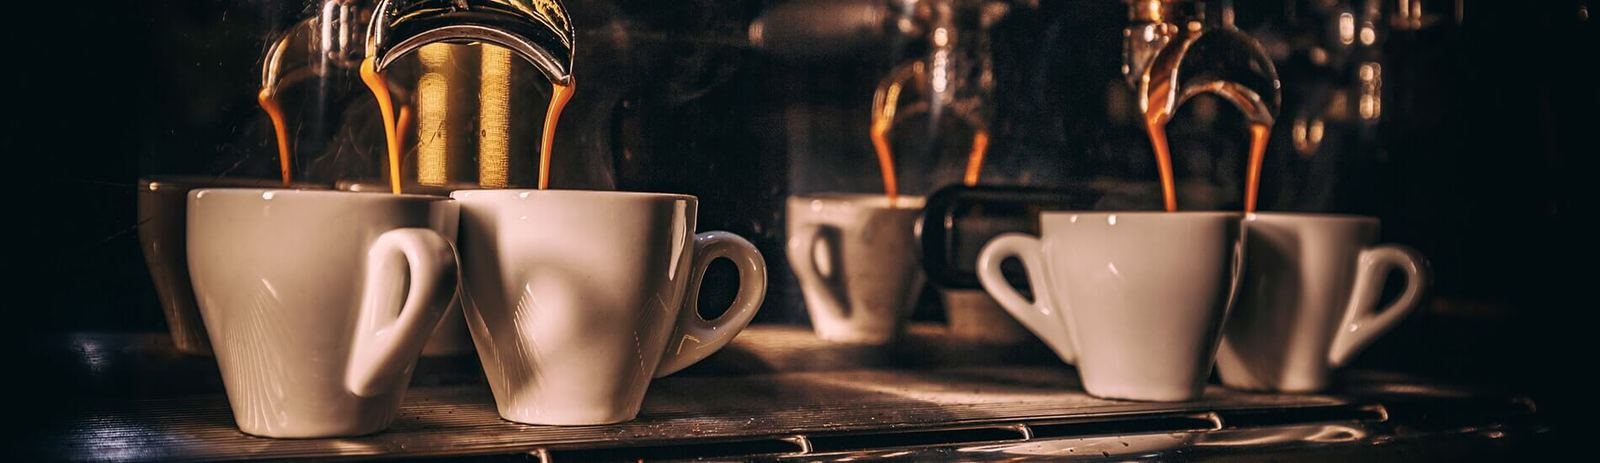 the uk's best espresso machines